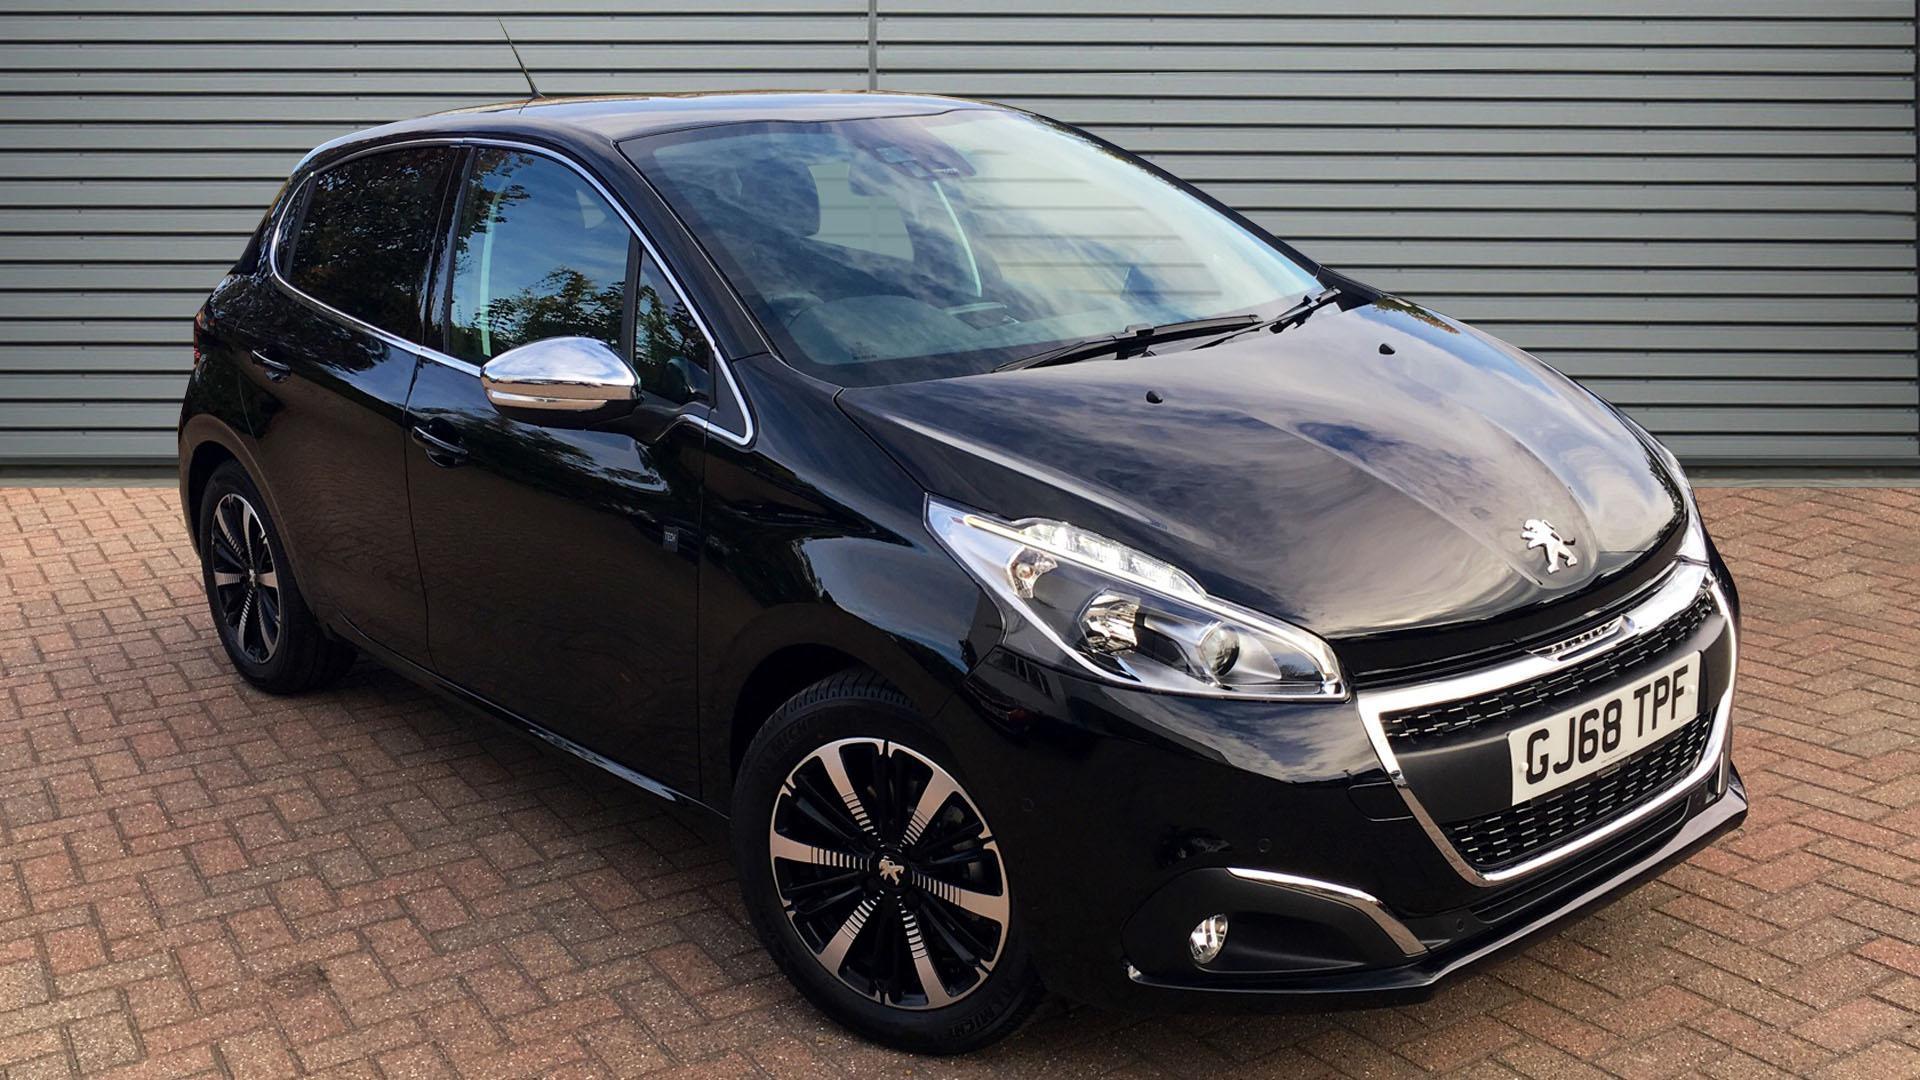 Used Peugeot 208 Tech Edition Black Cars for Sale